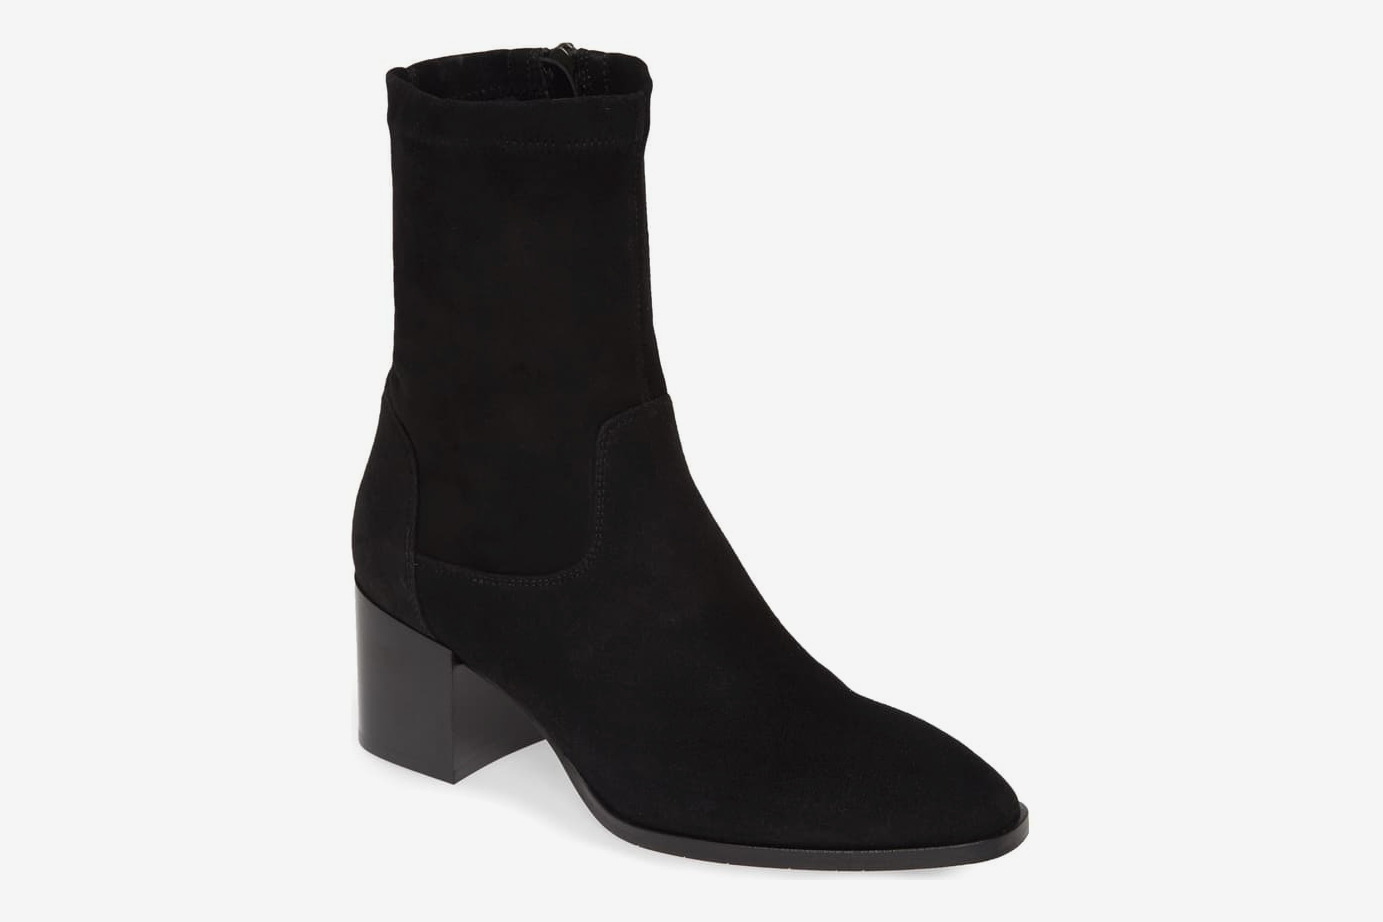 Aquatilia Tilly Weatherproof Bootie